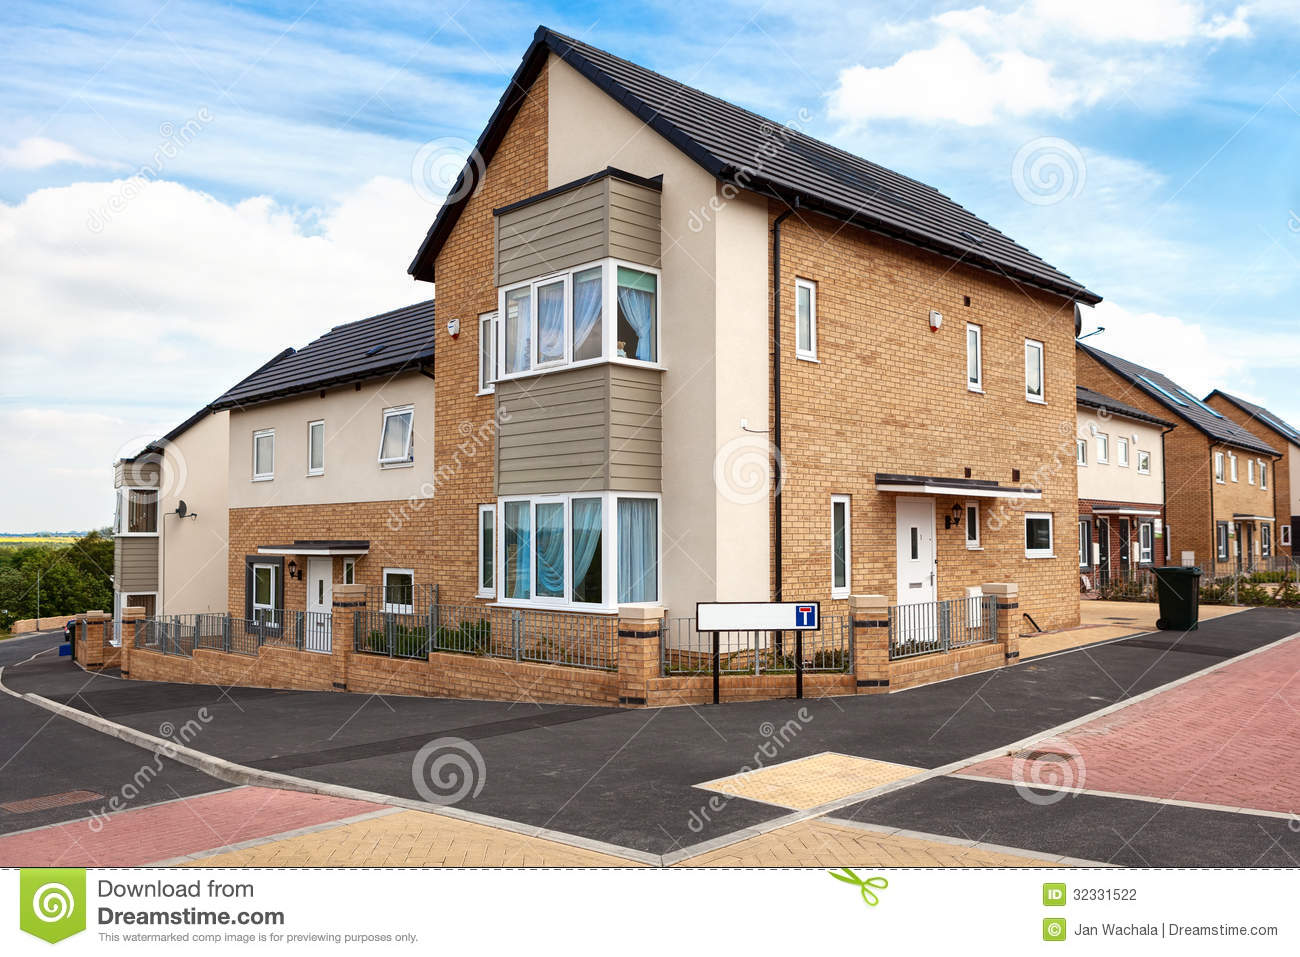 Houses on a typical english residential estate stock photo for Typical house design